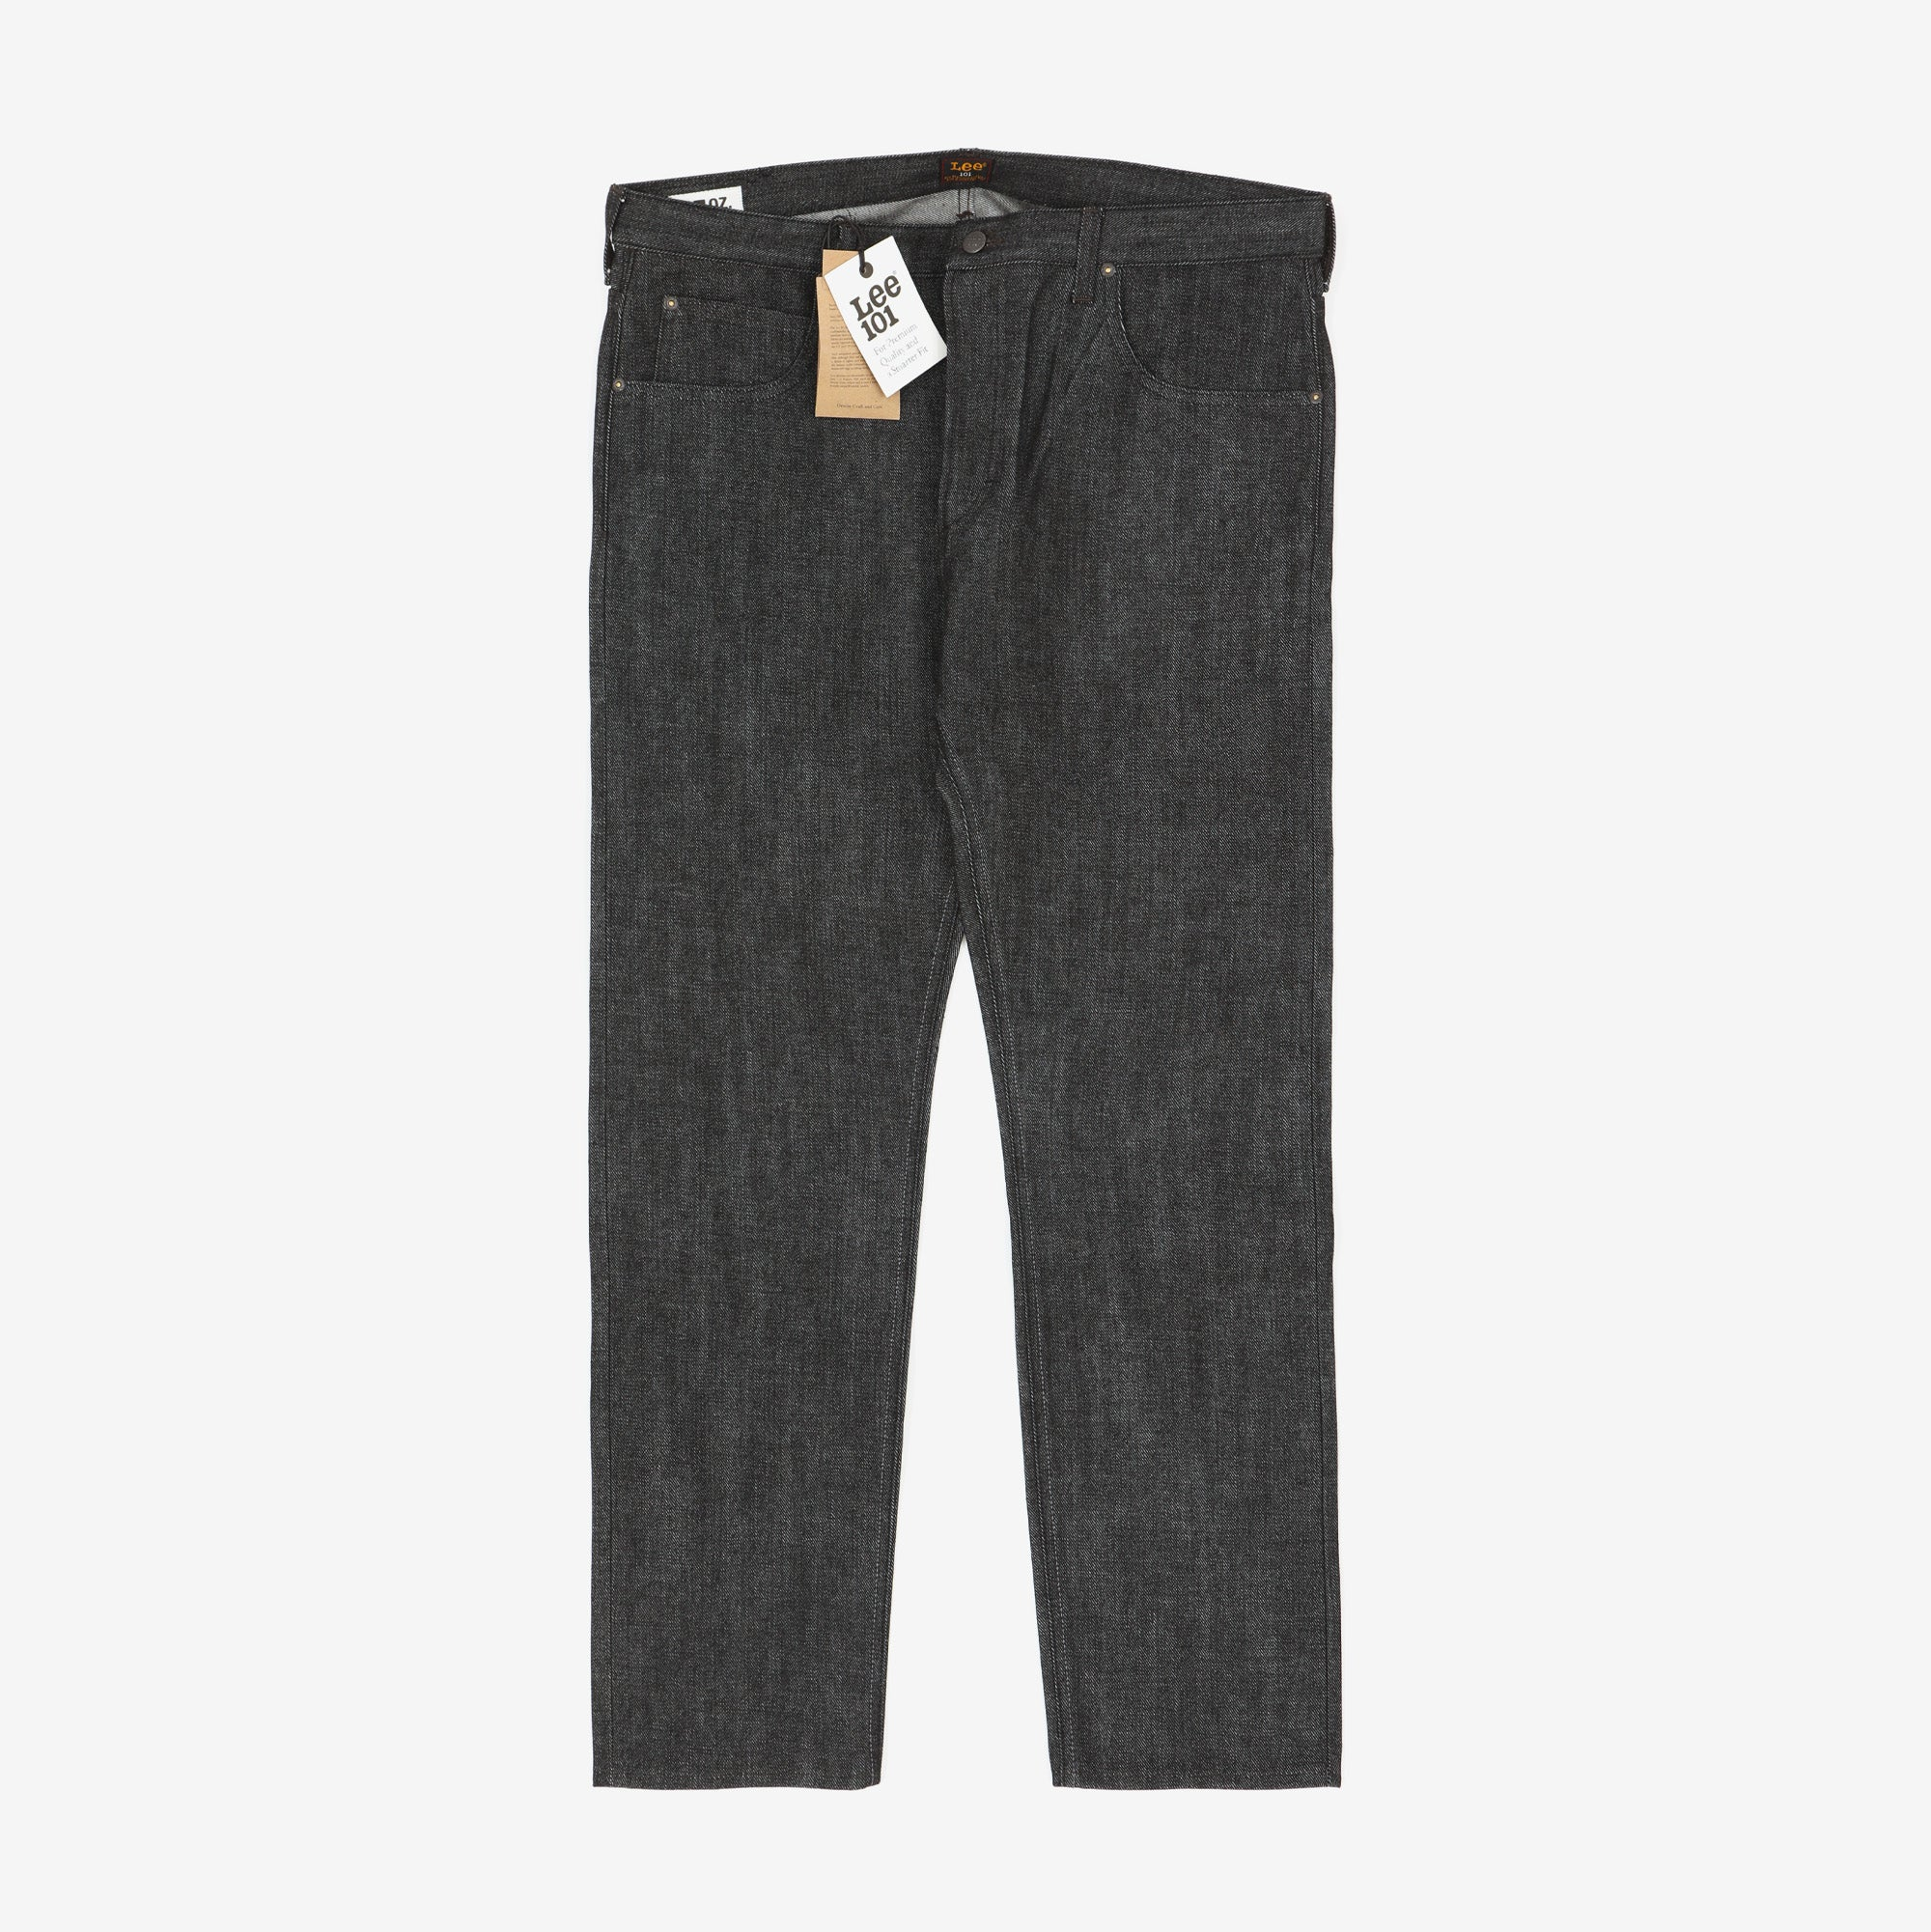 101 17oz Rider Selvedge Denim